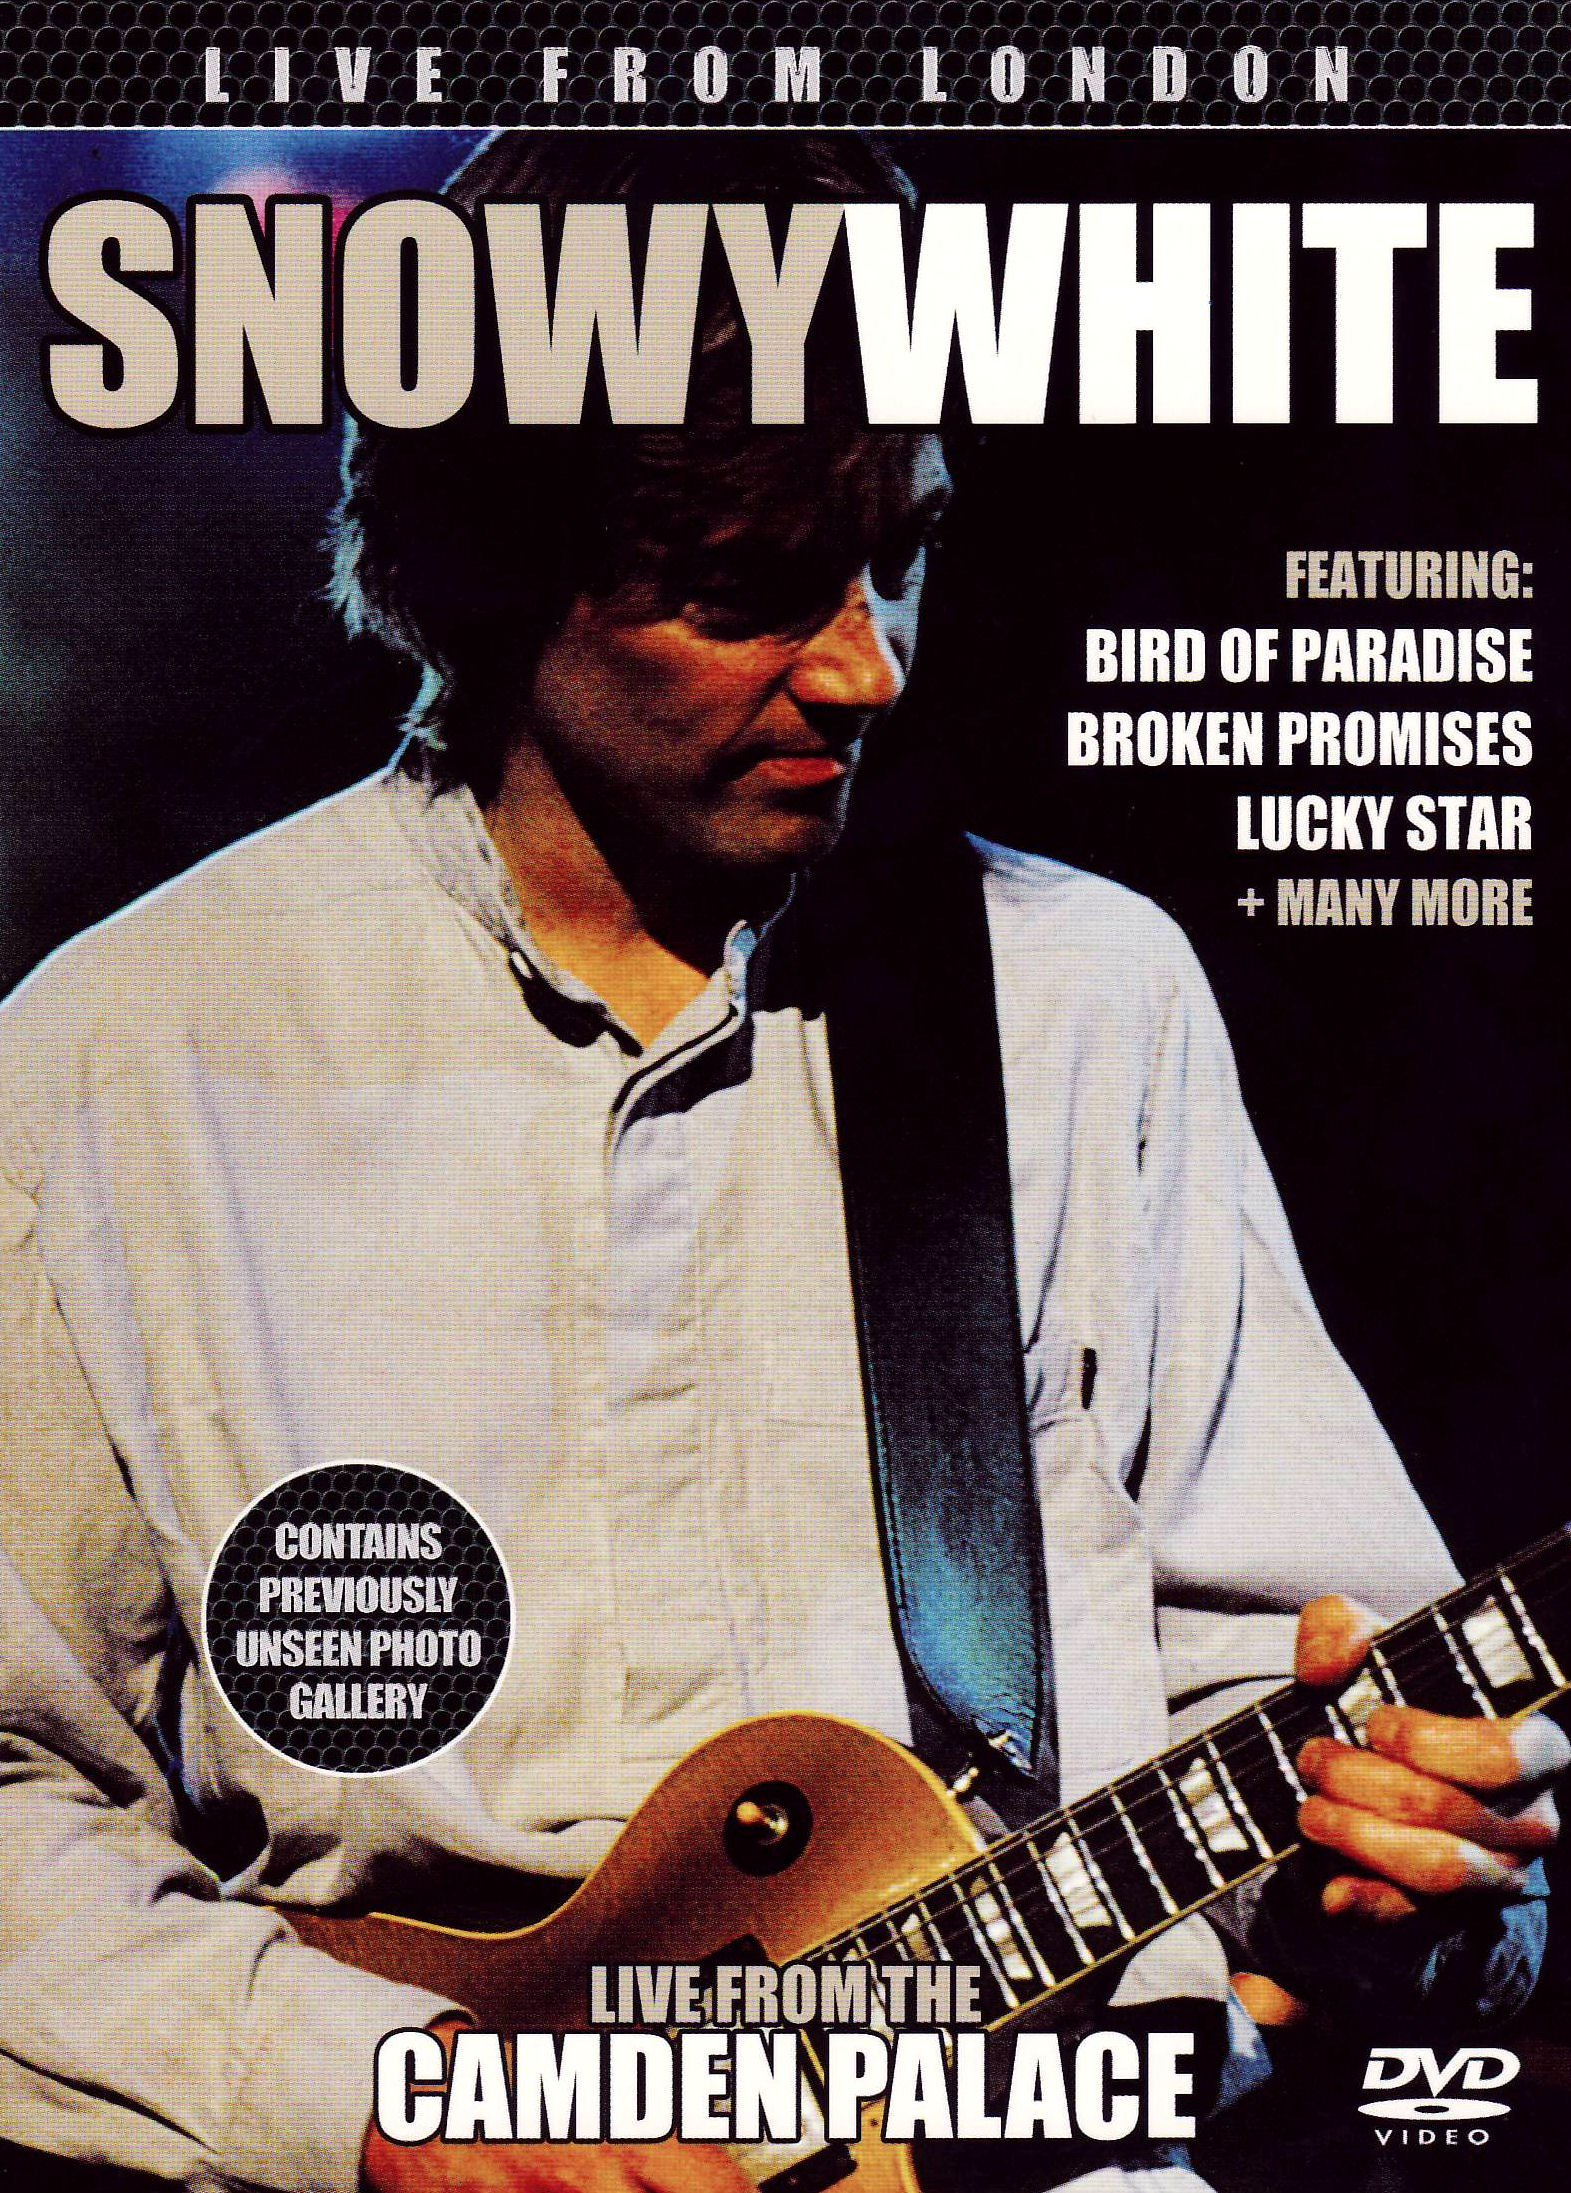 DVD : Snowy White - Live From London (DVD)